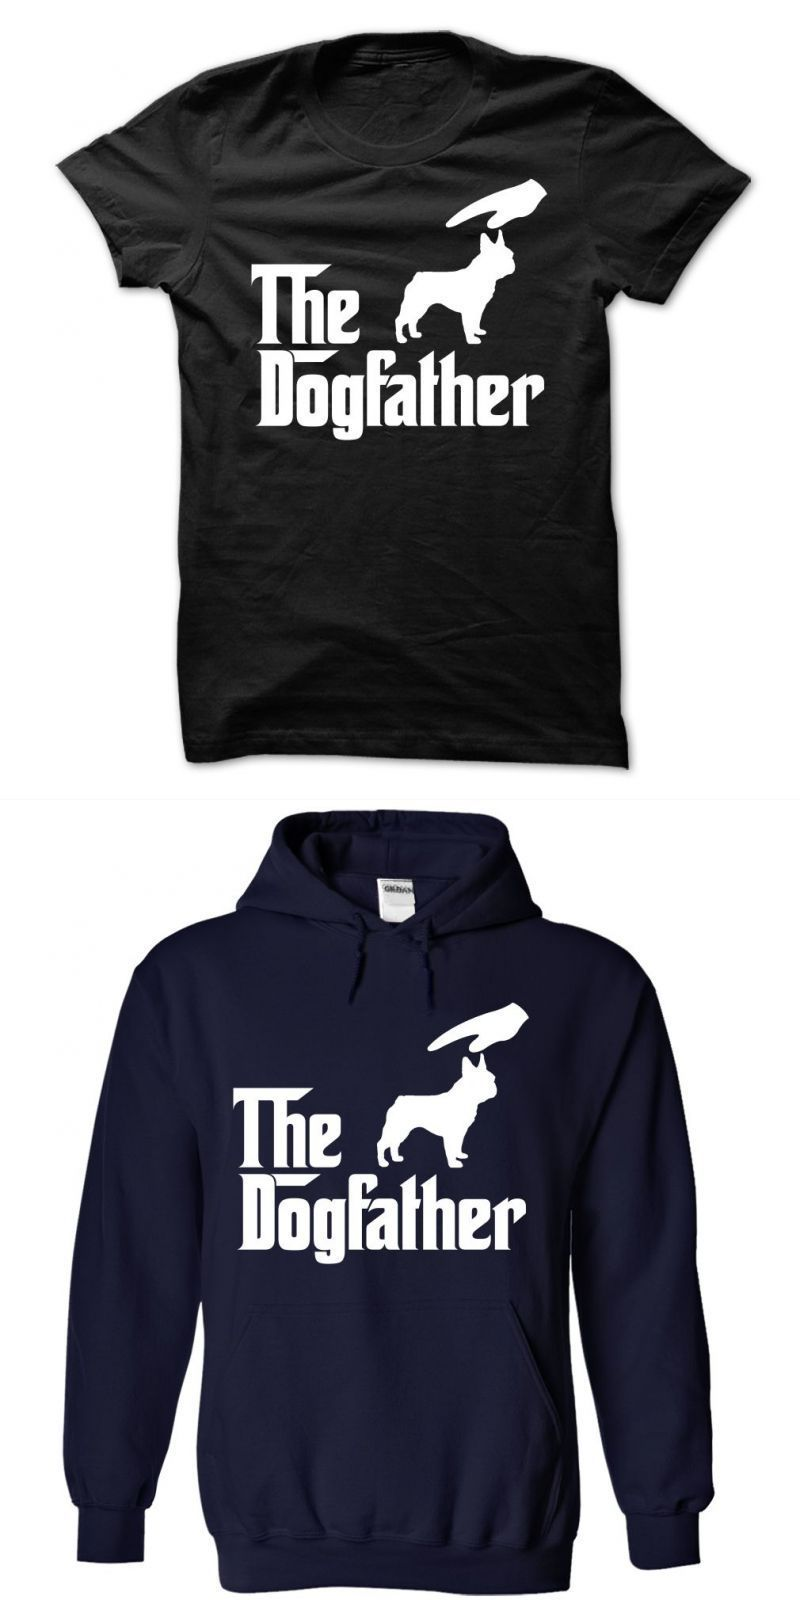 Dog T Shirt Face Swap The Dogfather French Bulldog #dog #apparel #discount #dog #t #shirt #for #humans #dogs #ear #t #shirts #langley #givenchy #2 #dog #shirt